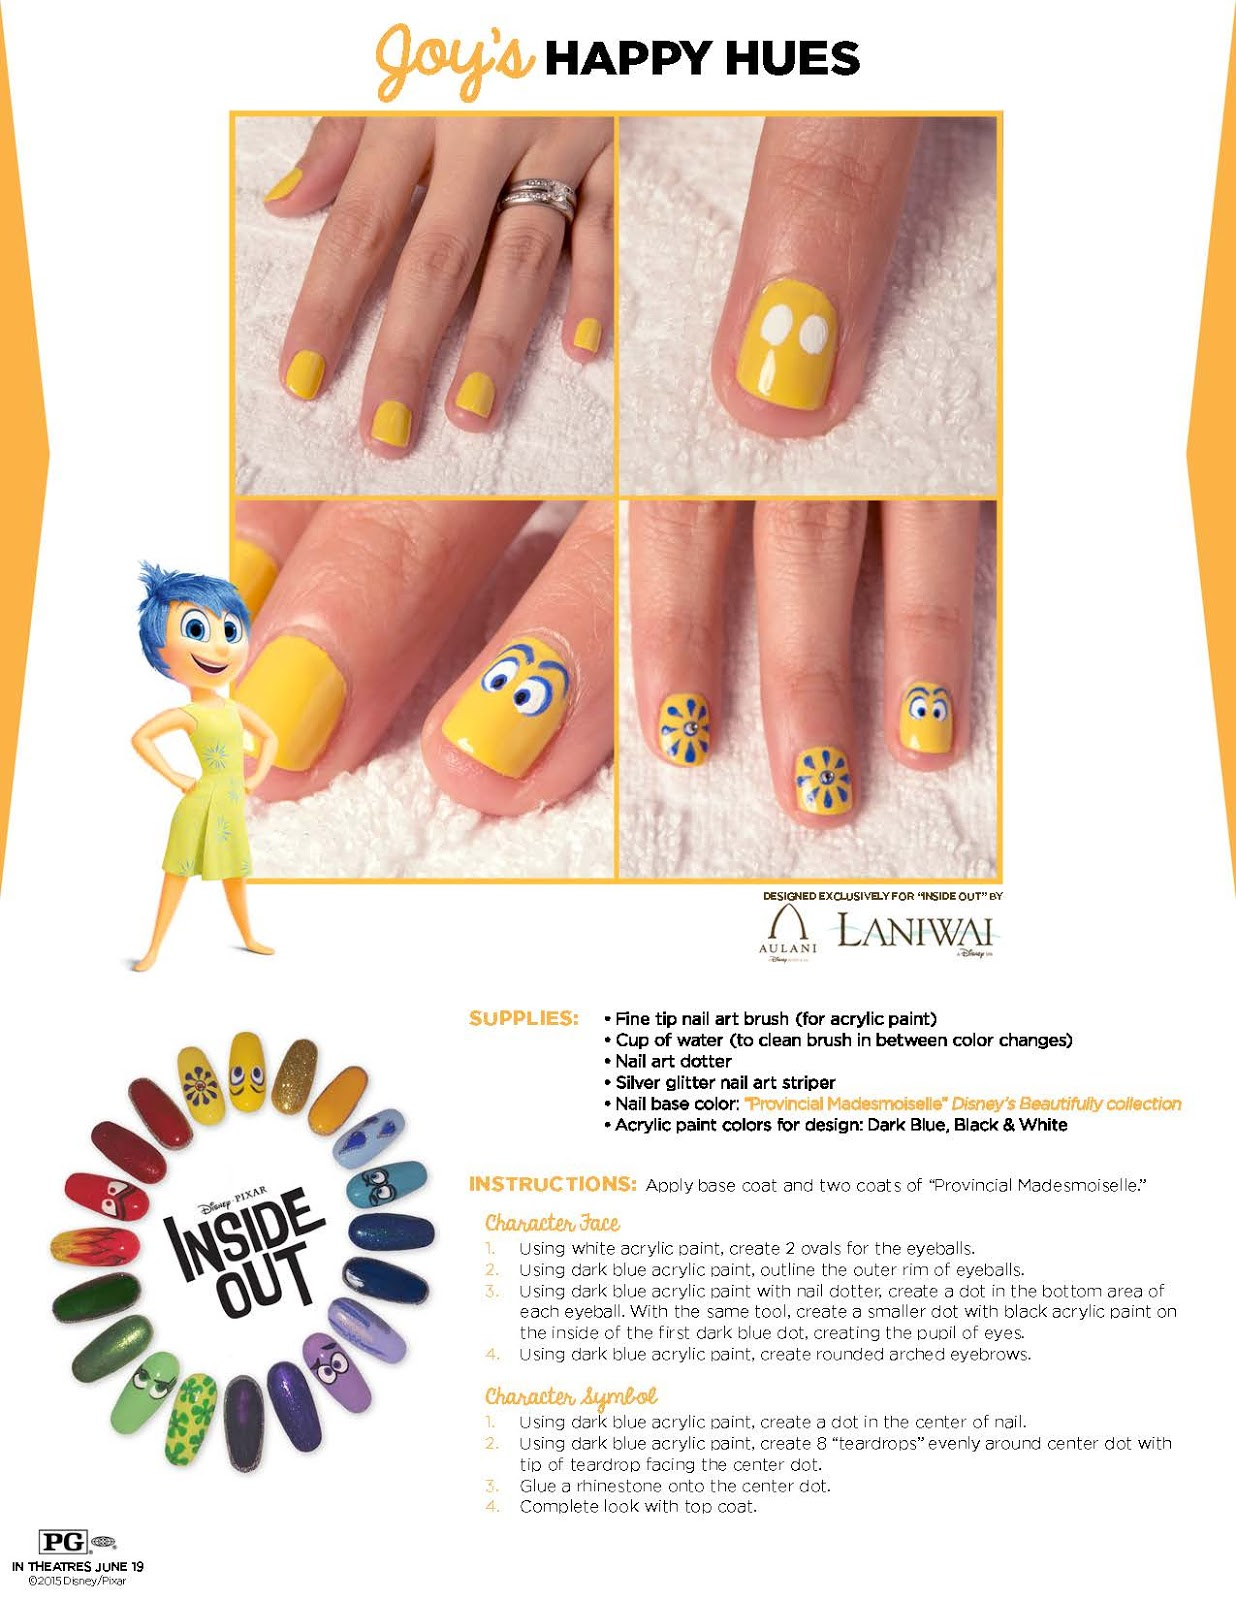 CanDoItMom BLOG: #INSIDEOUT - Print Out Activities + Nail Art Designs